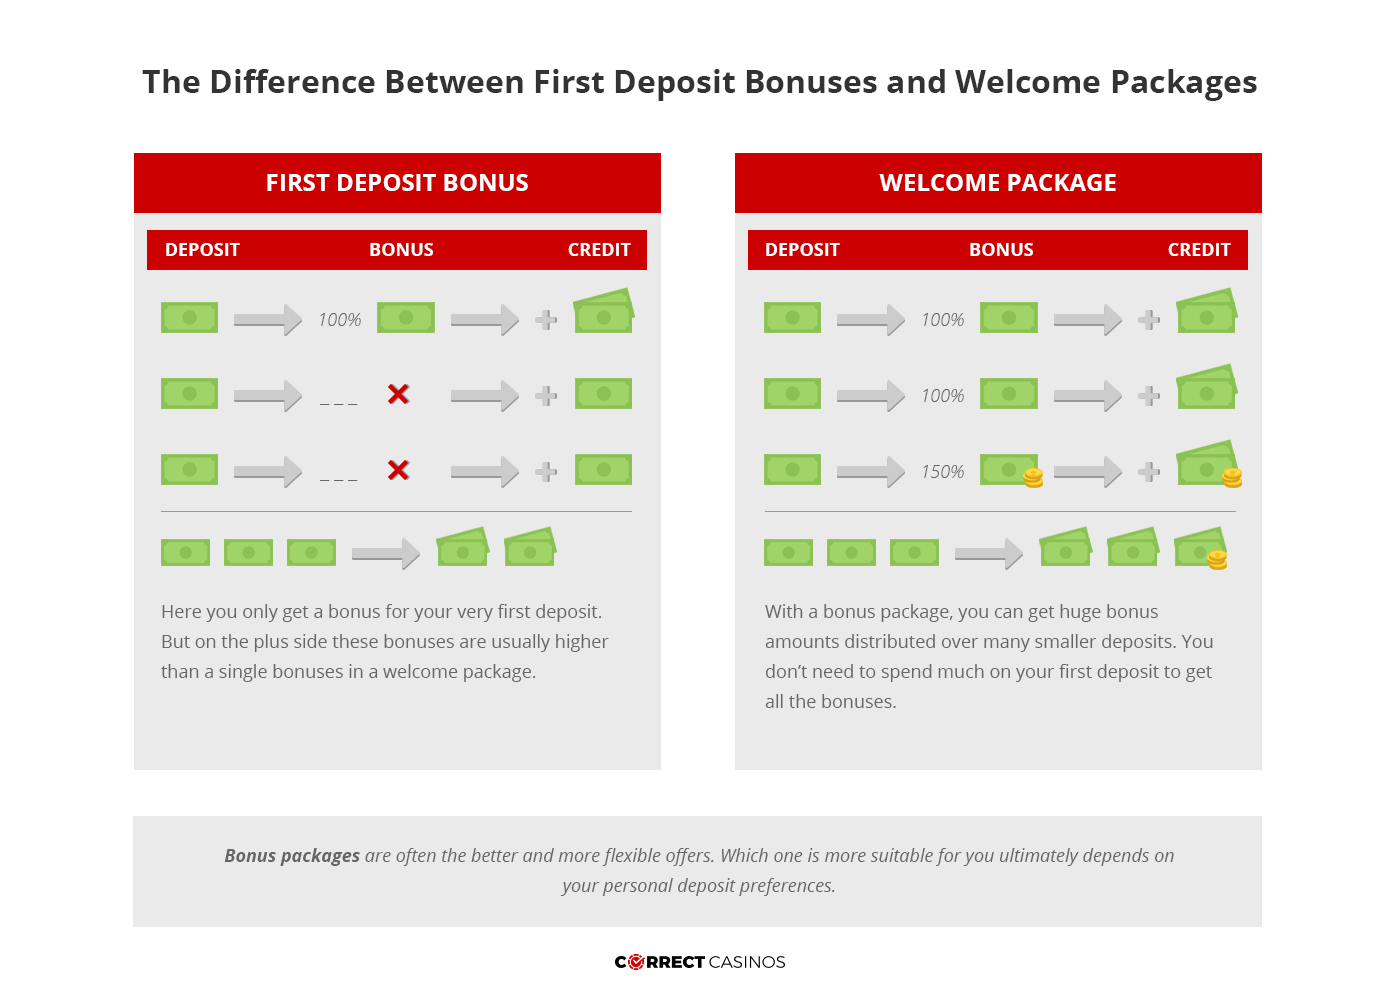 First Deposit Bonuses vs Welcome Bonuses